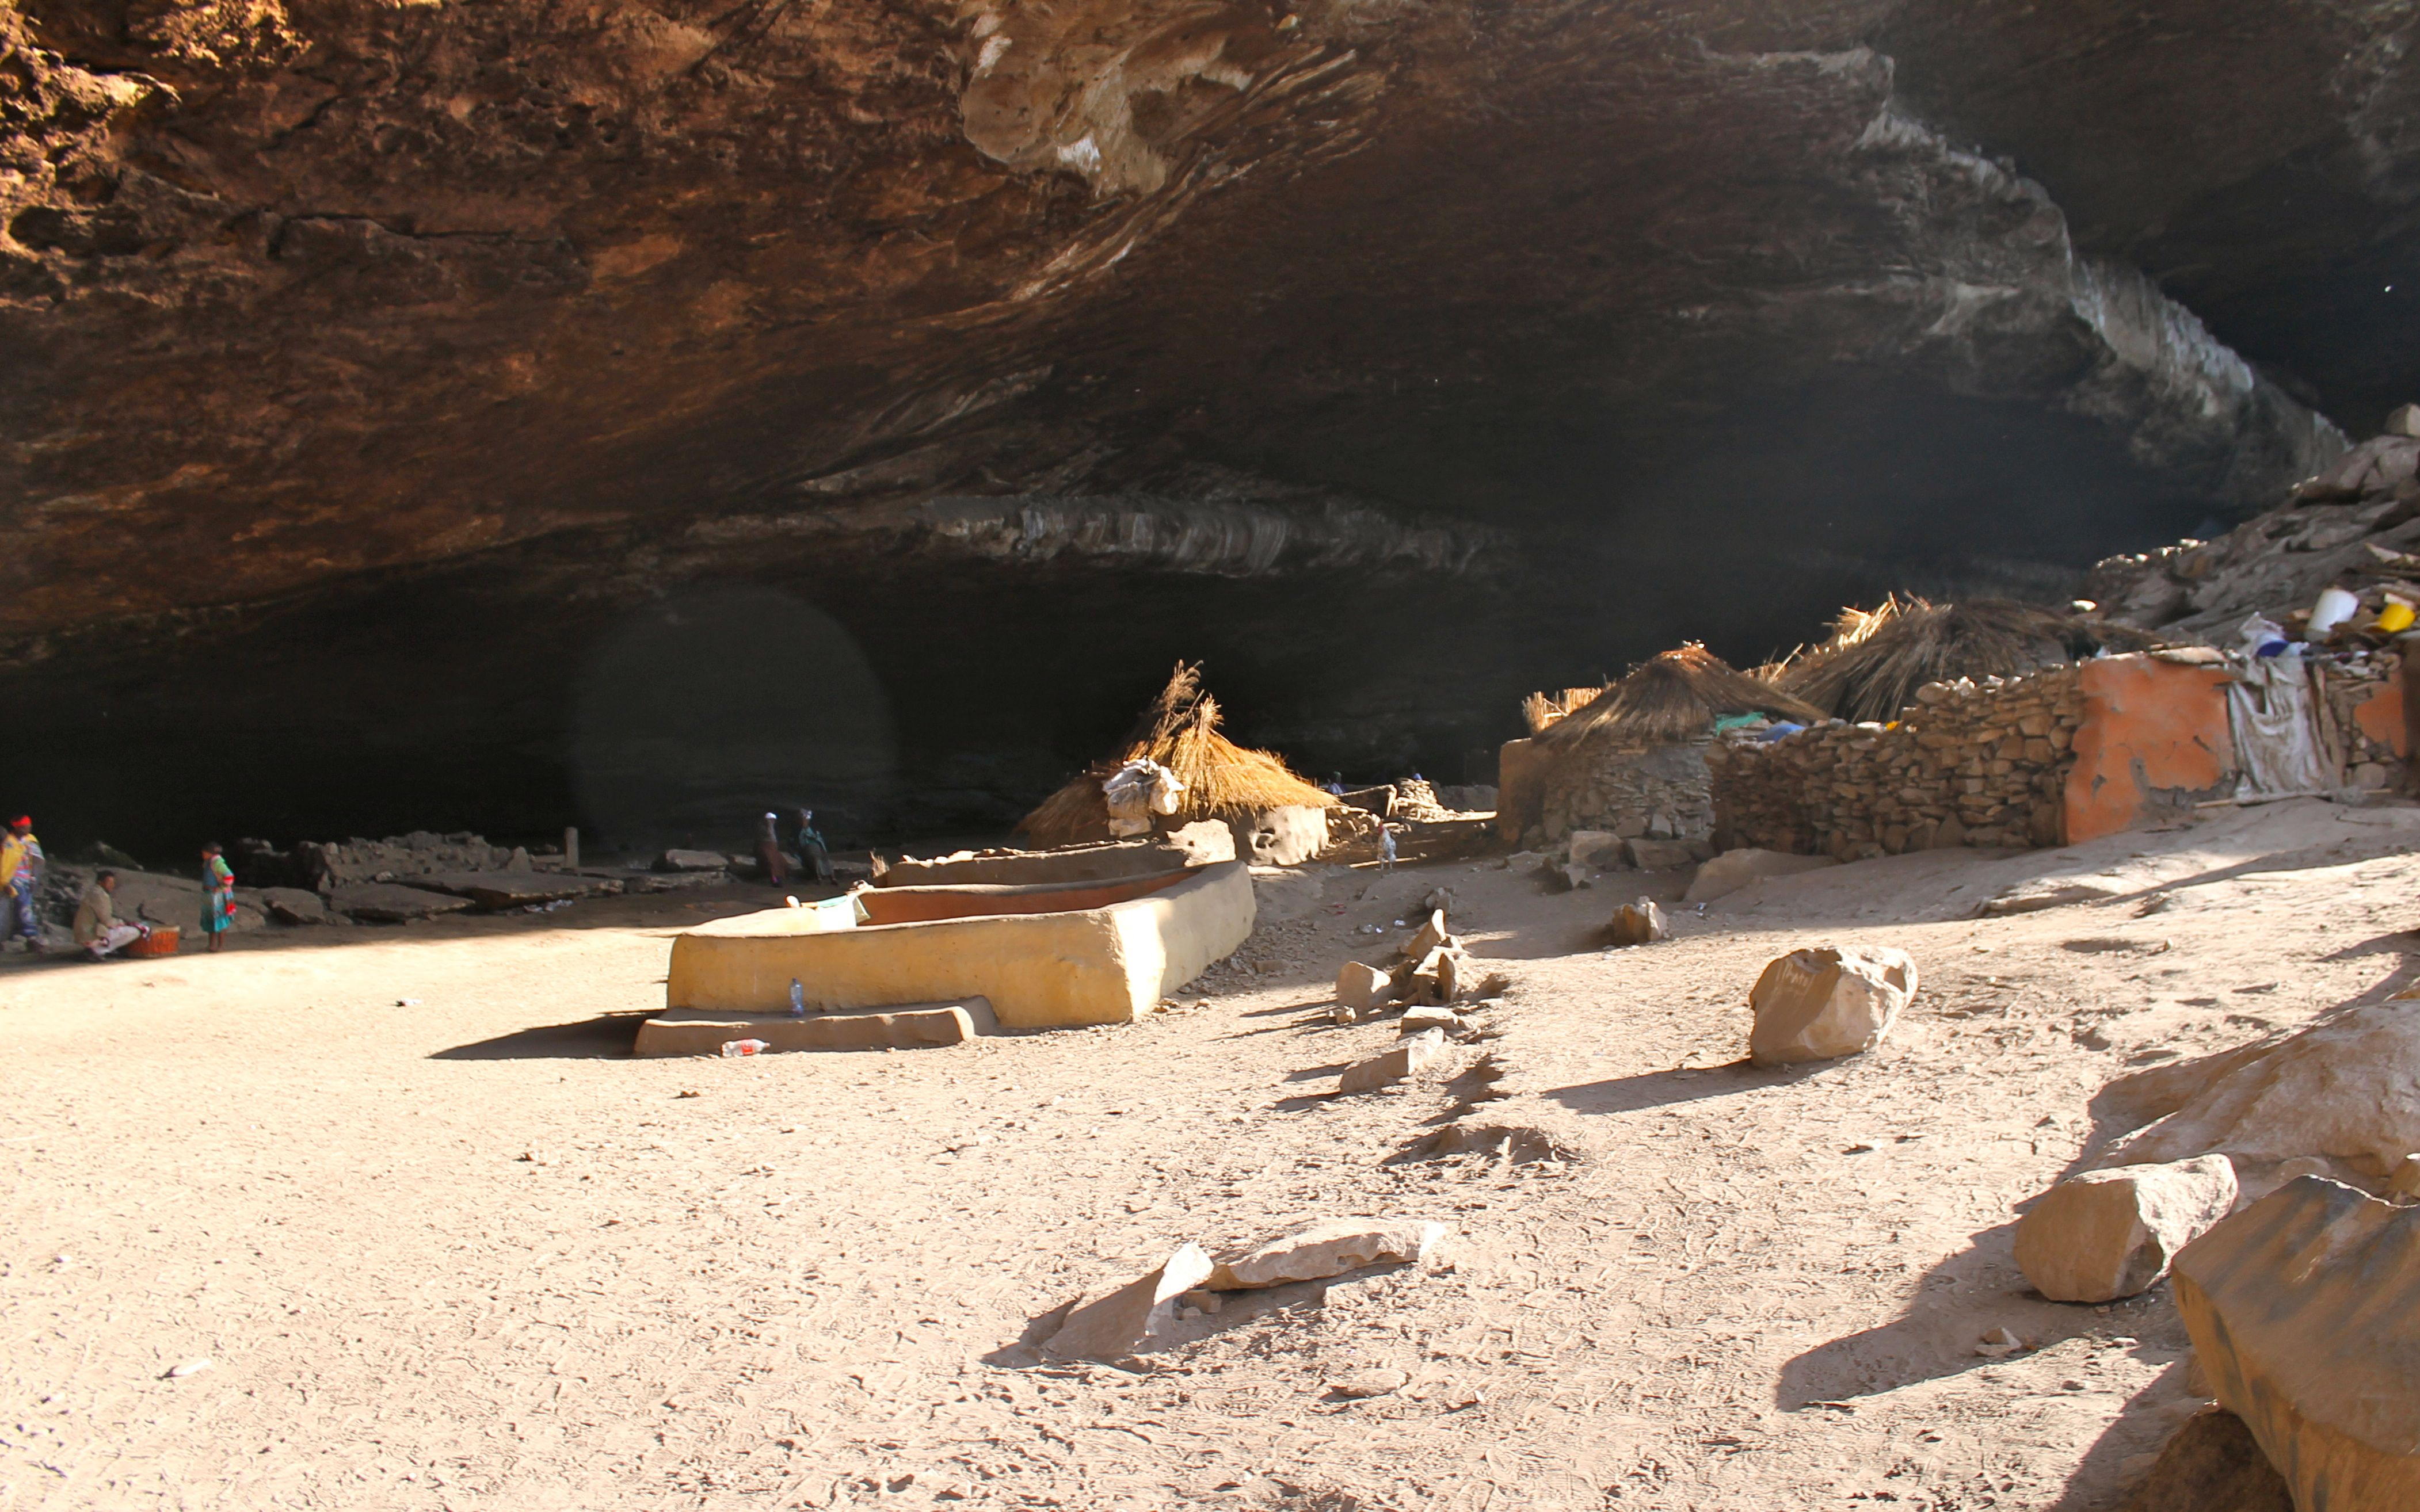 Entrance to the Fertility caves in South Africa